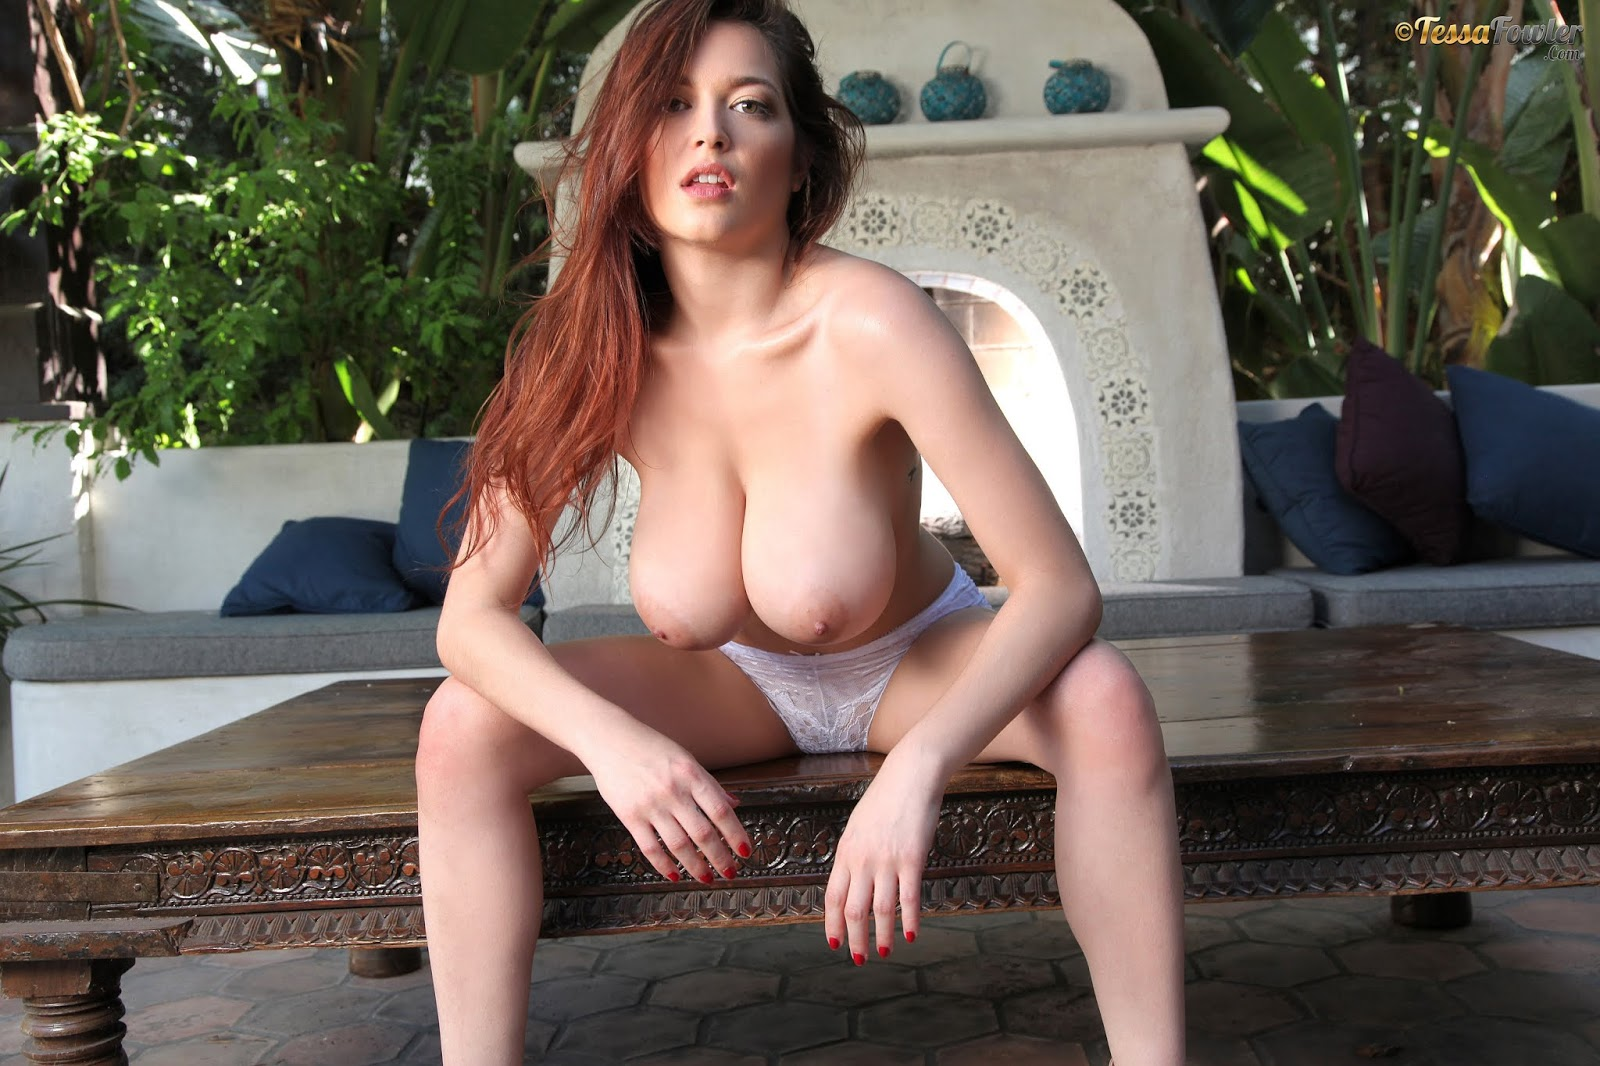 Laura flannery nude topless and hot sex liz tabish and robin hines nude topless and sex